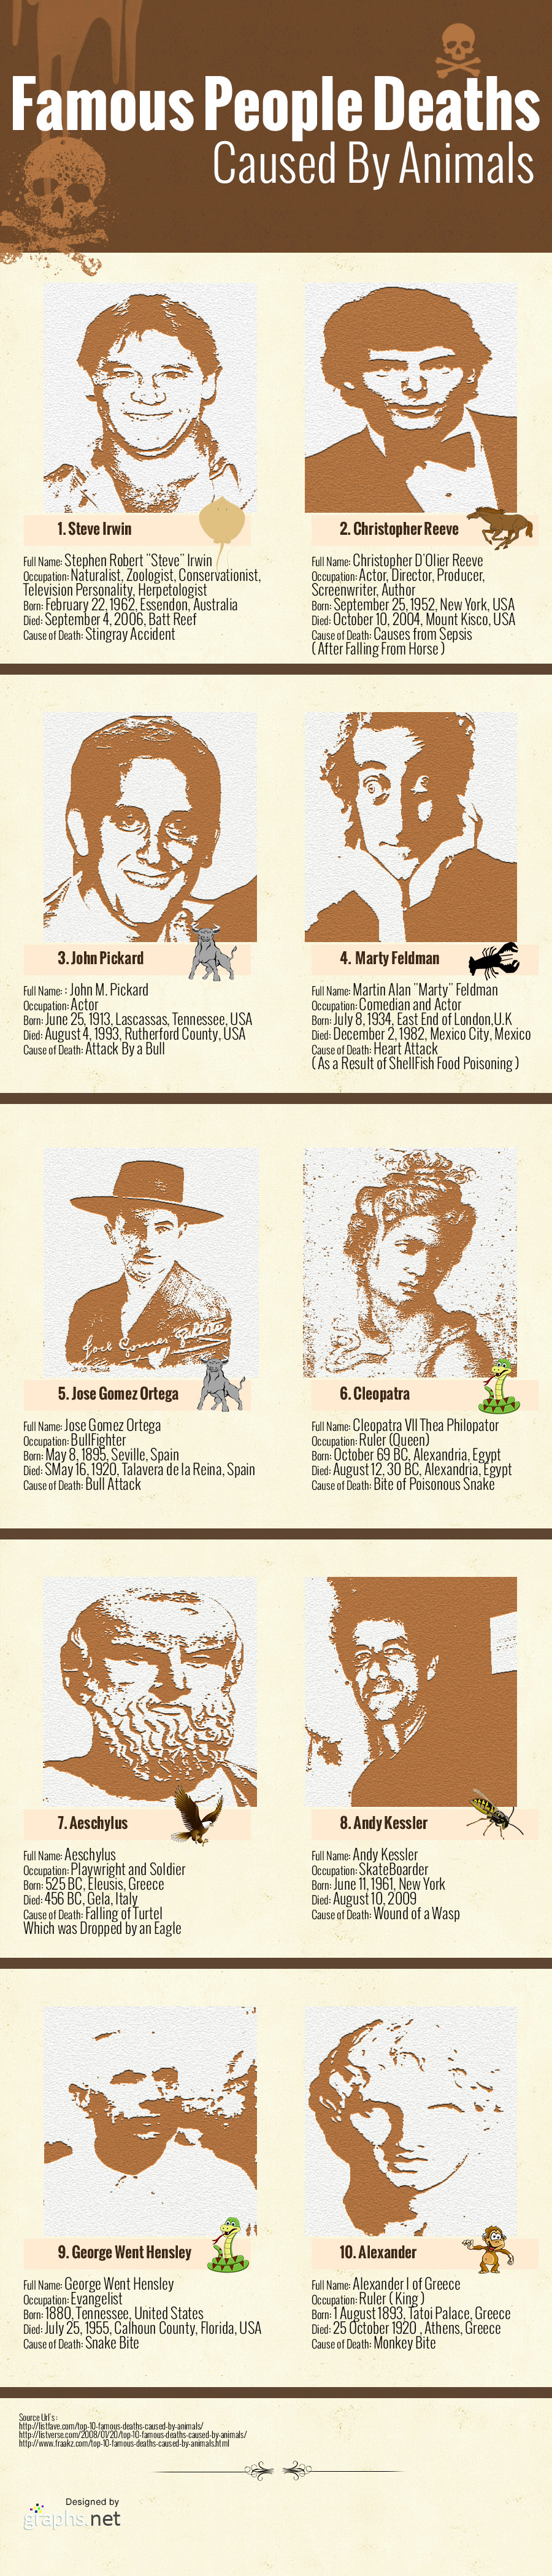 Famous People Deaths Caused by Animals